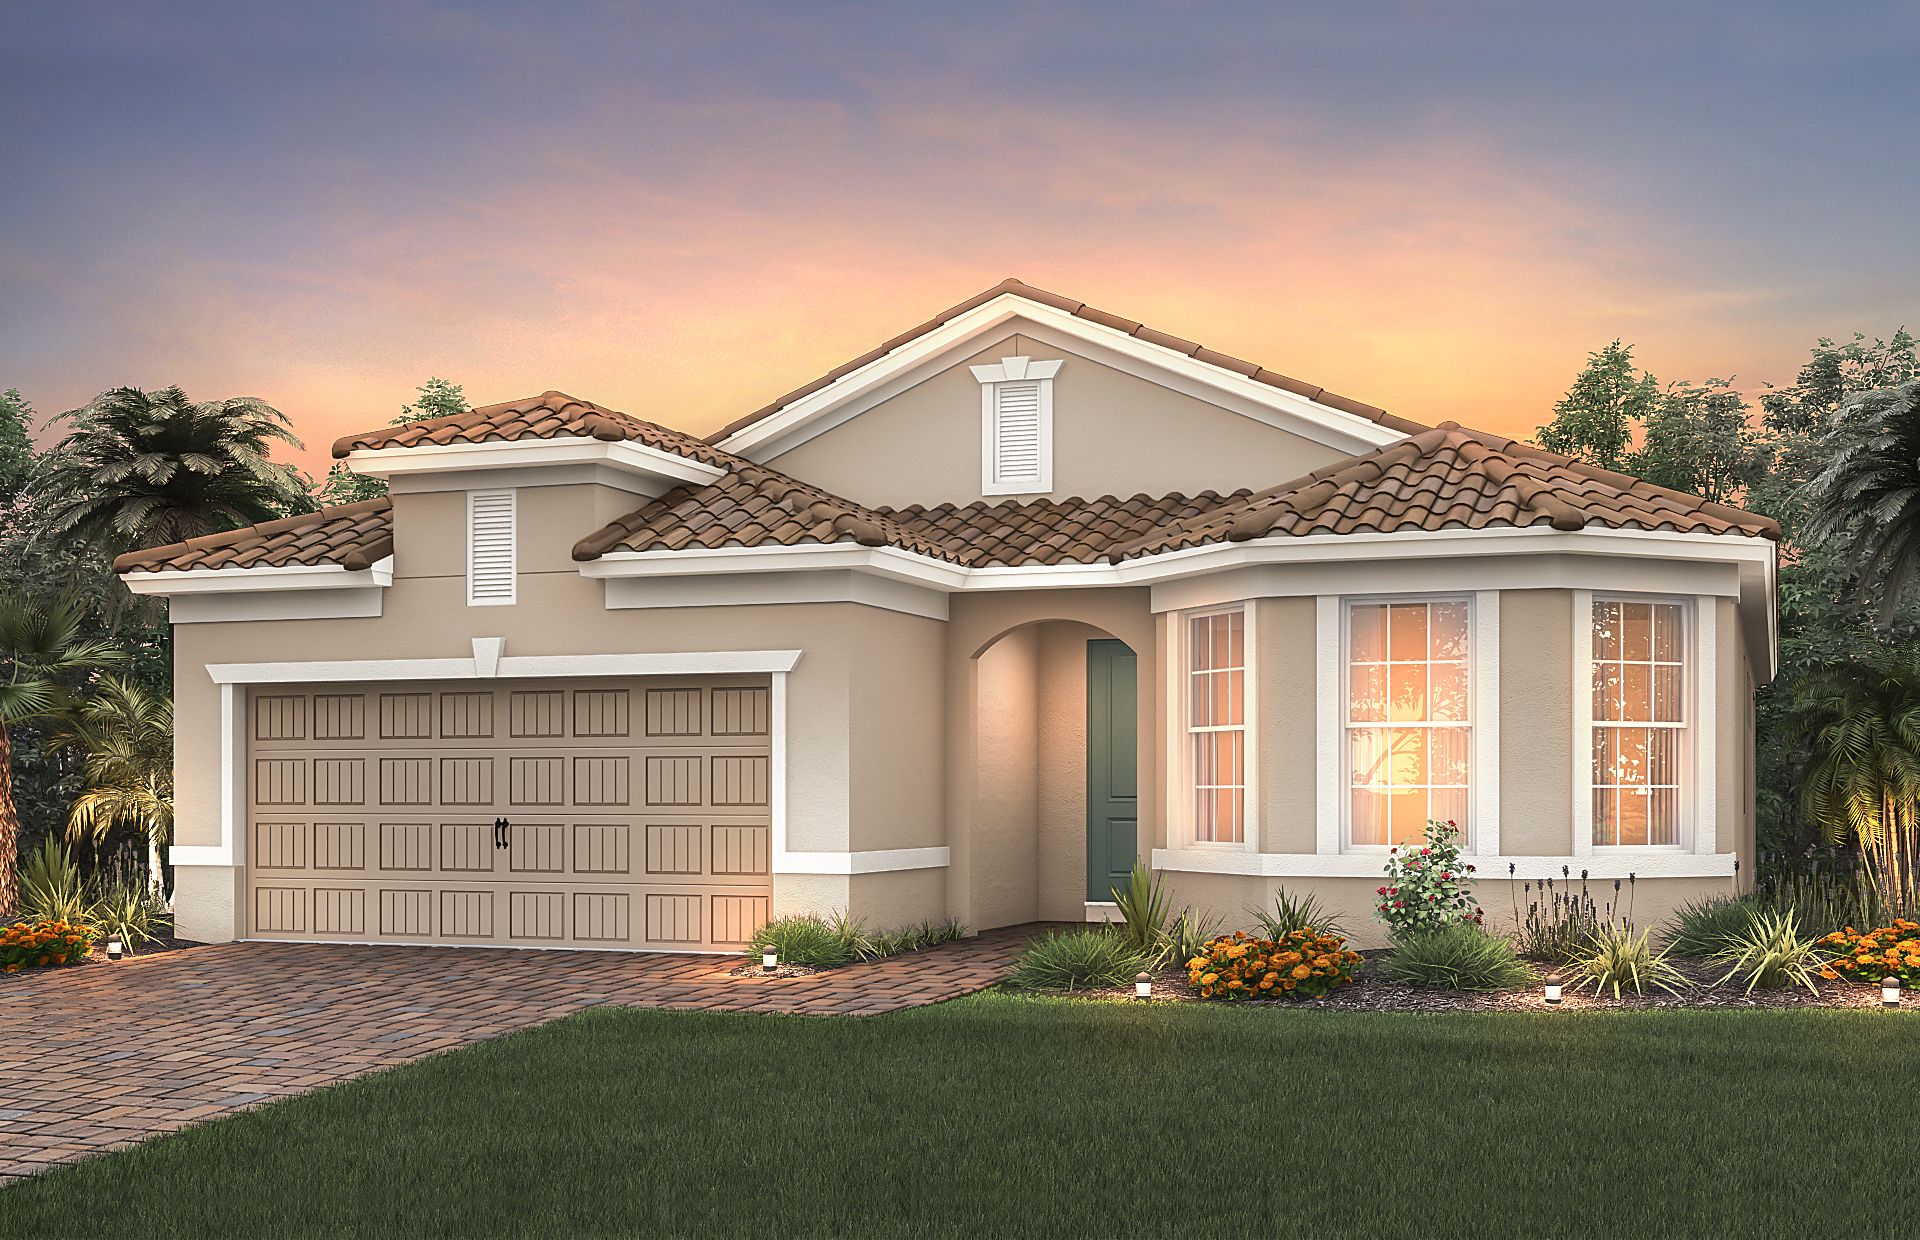 Summerwood Ready In October Homesite 319 Lakewood Ranch